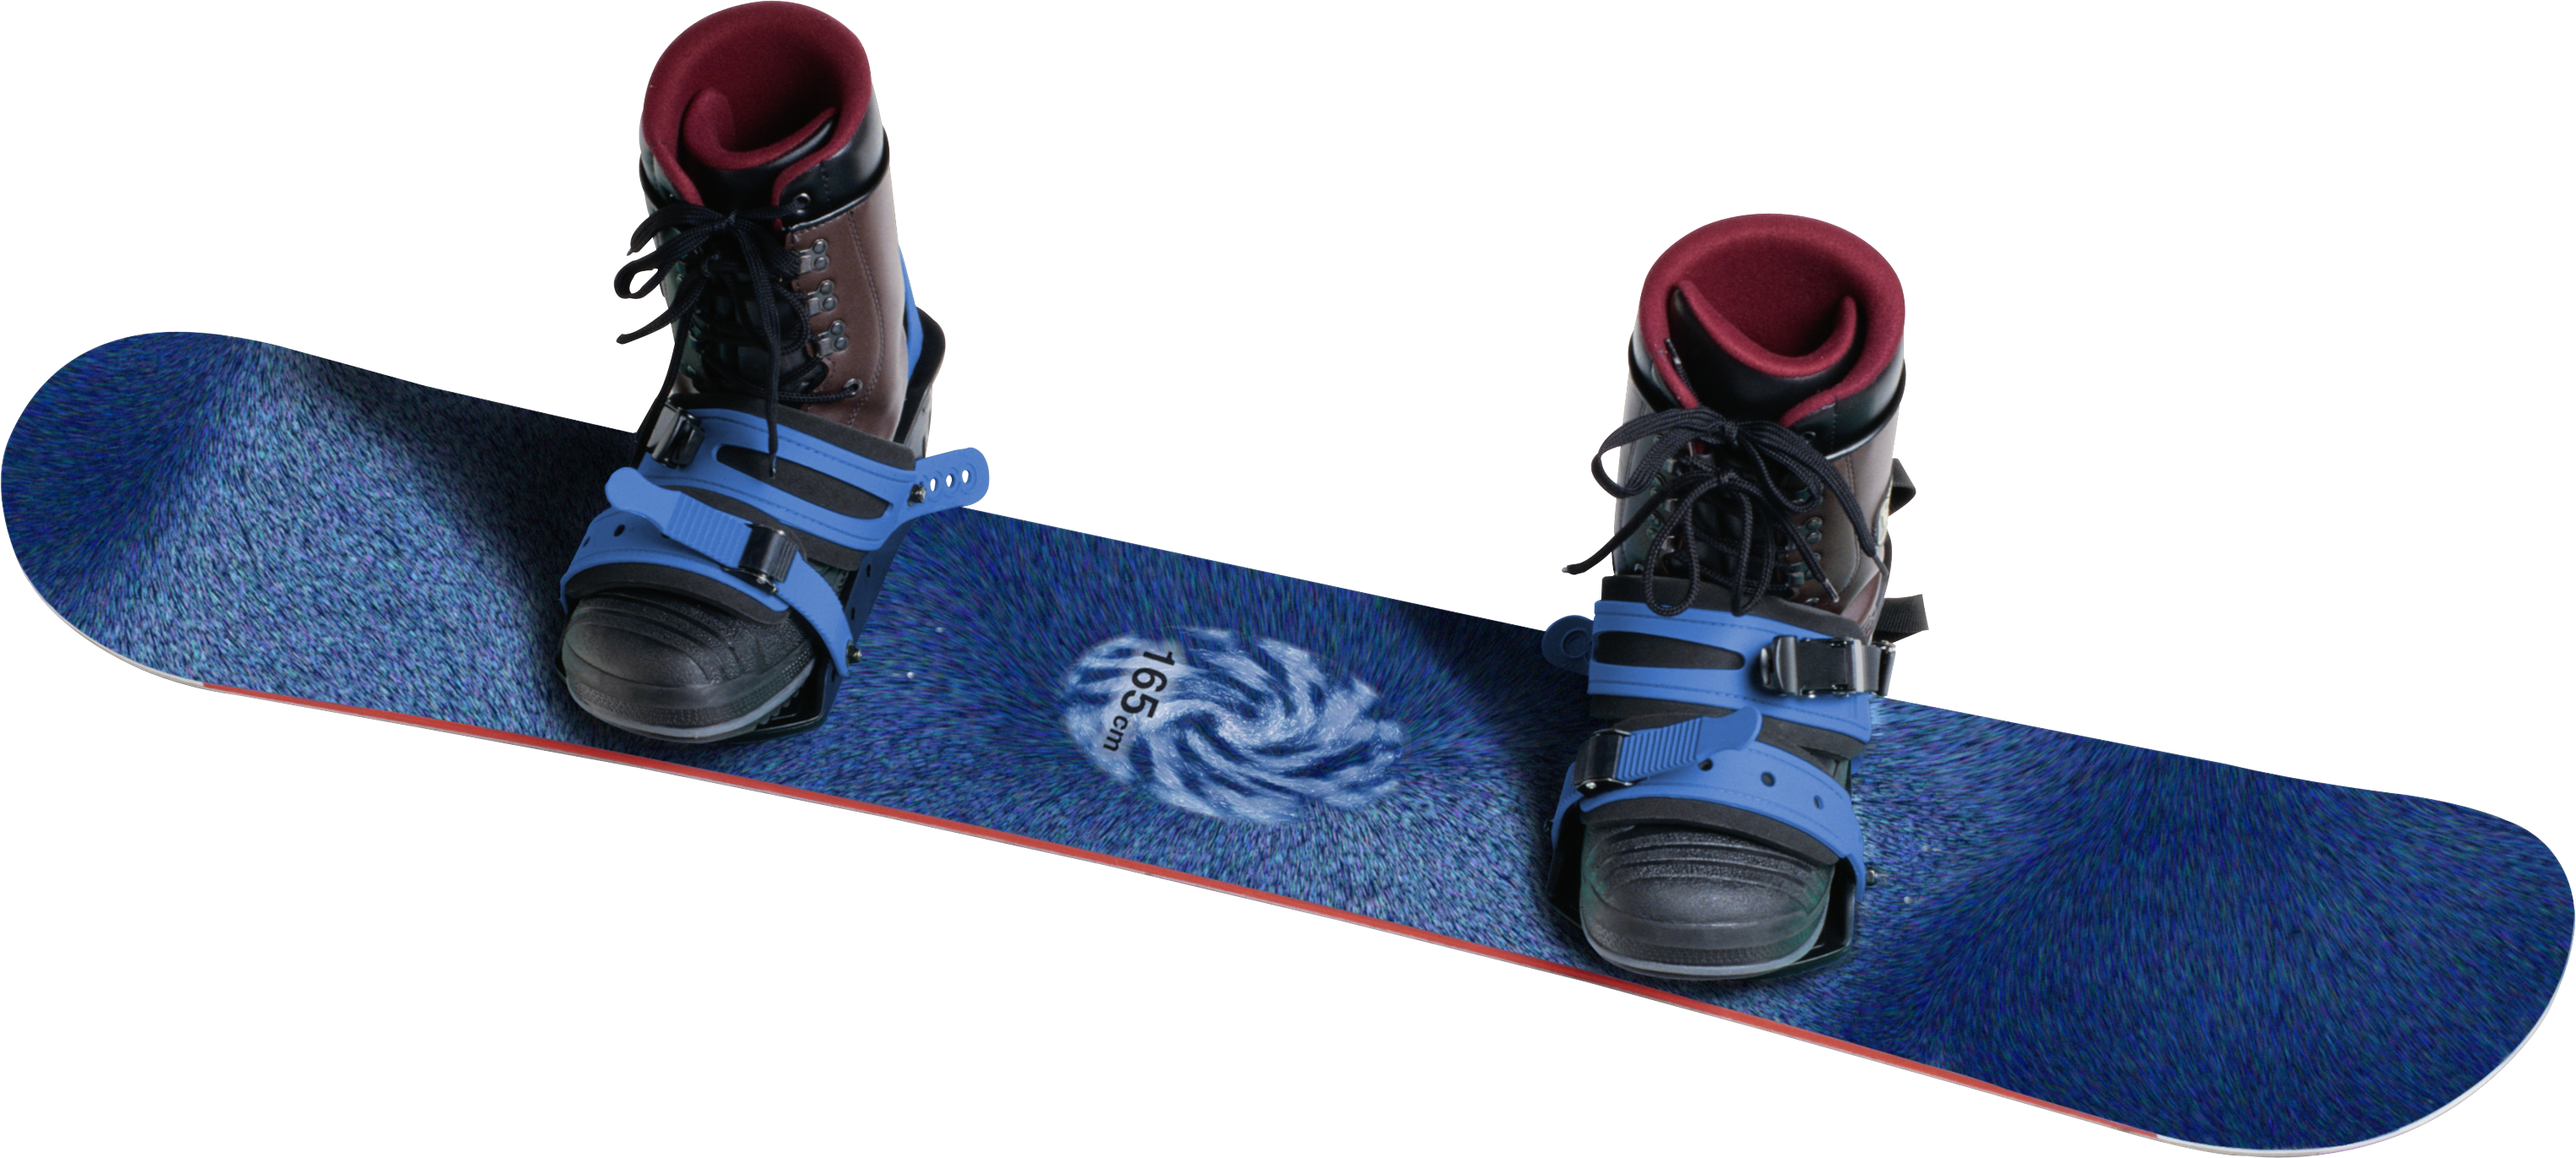 Snowboard Png Image - Snowboard, Transparent background PNG HD thumbnail